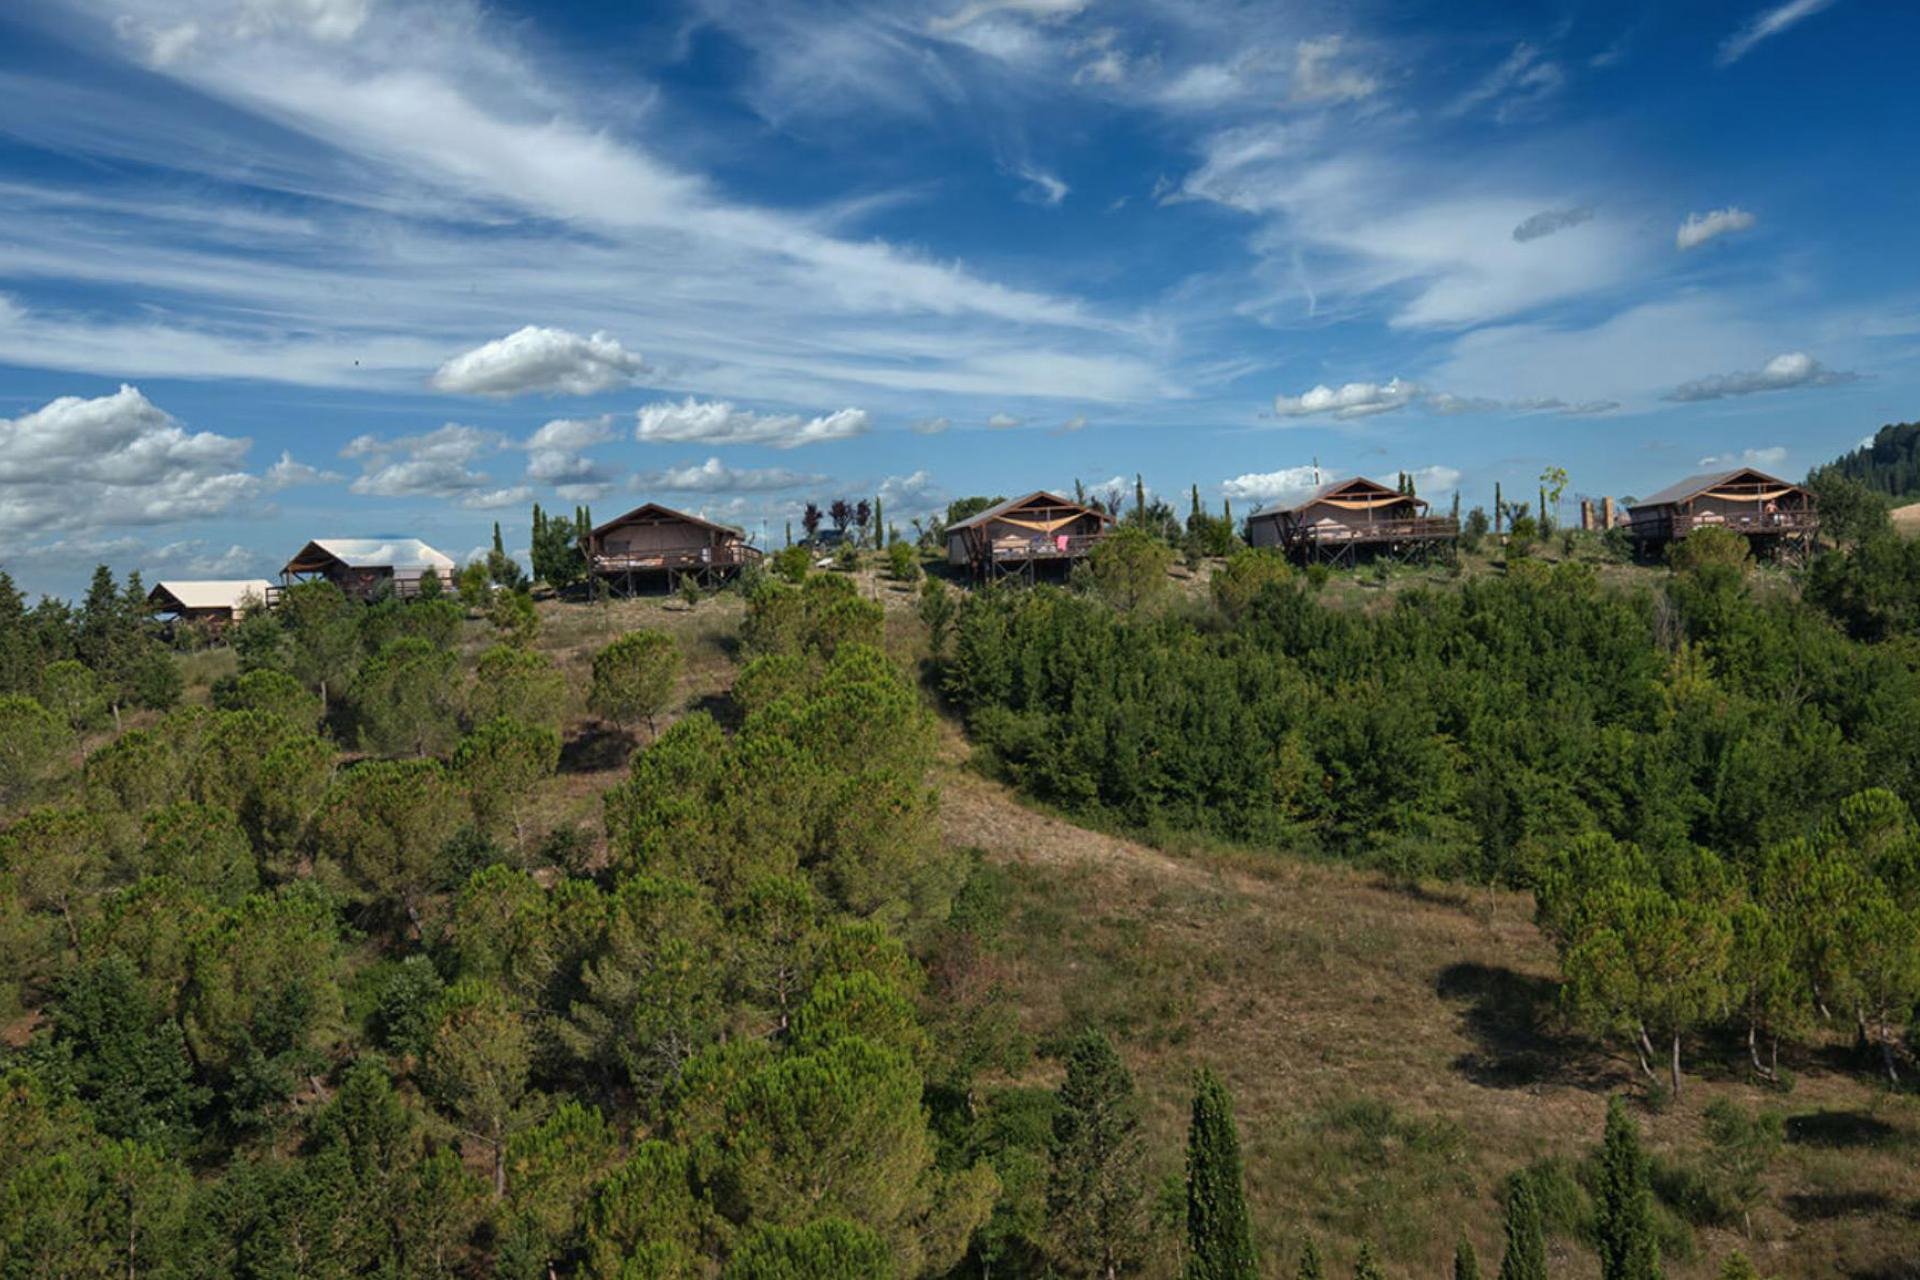 Agriturismo Toscana Glamping per famiglie in Toscana